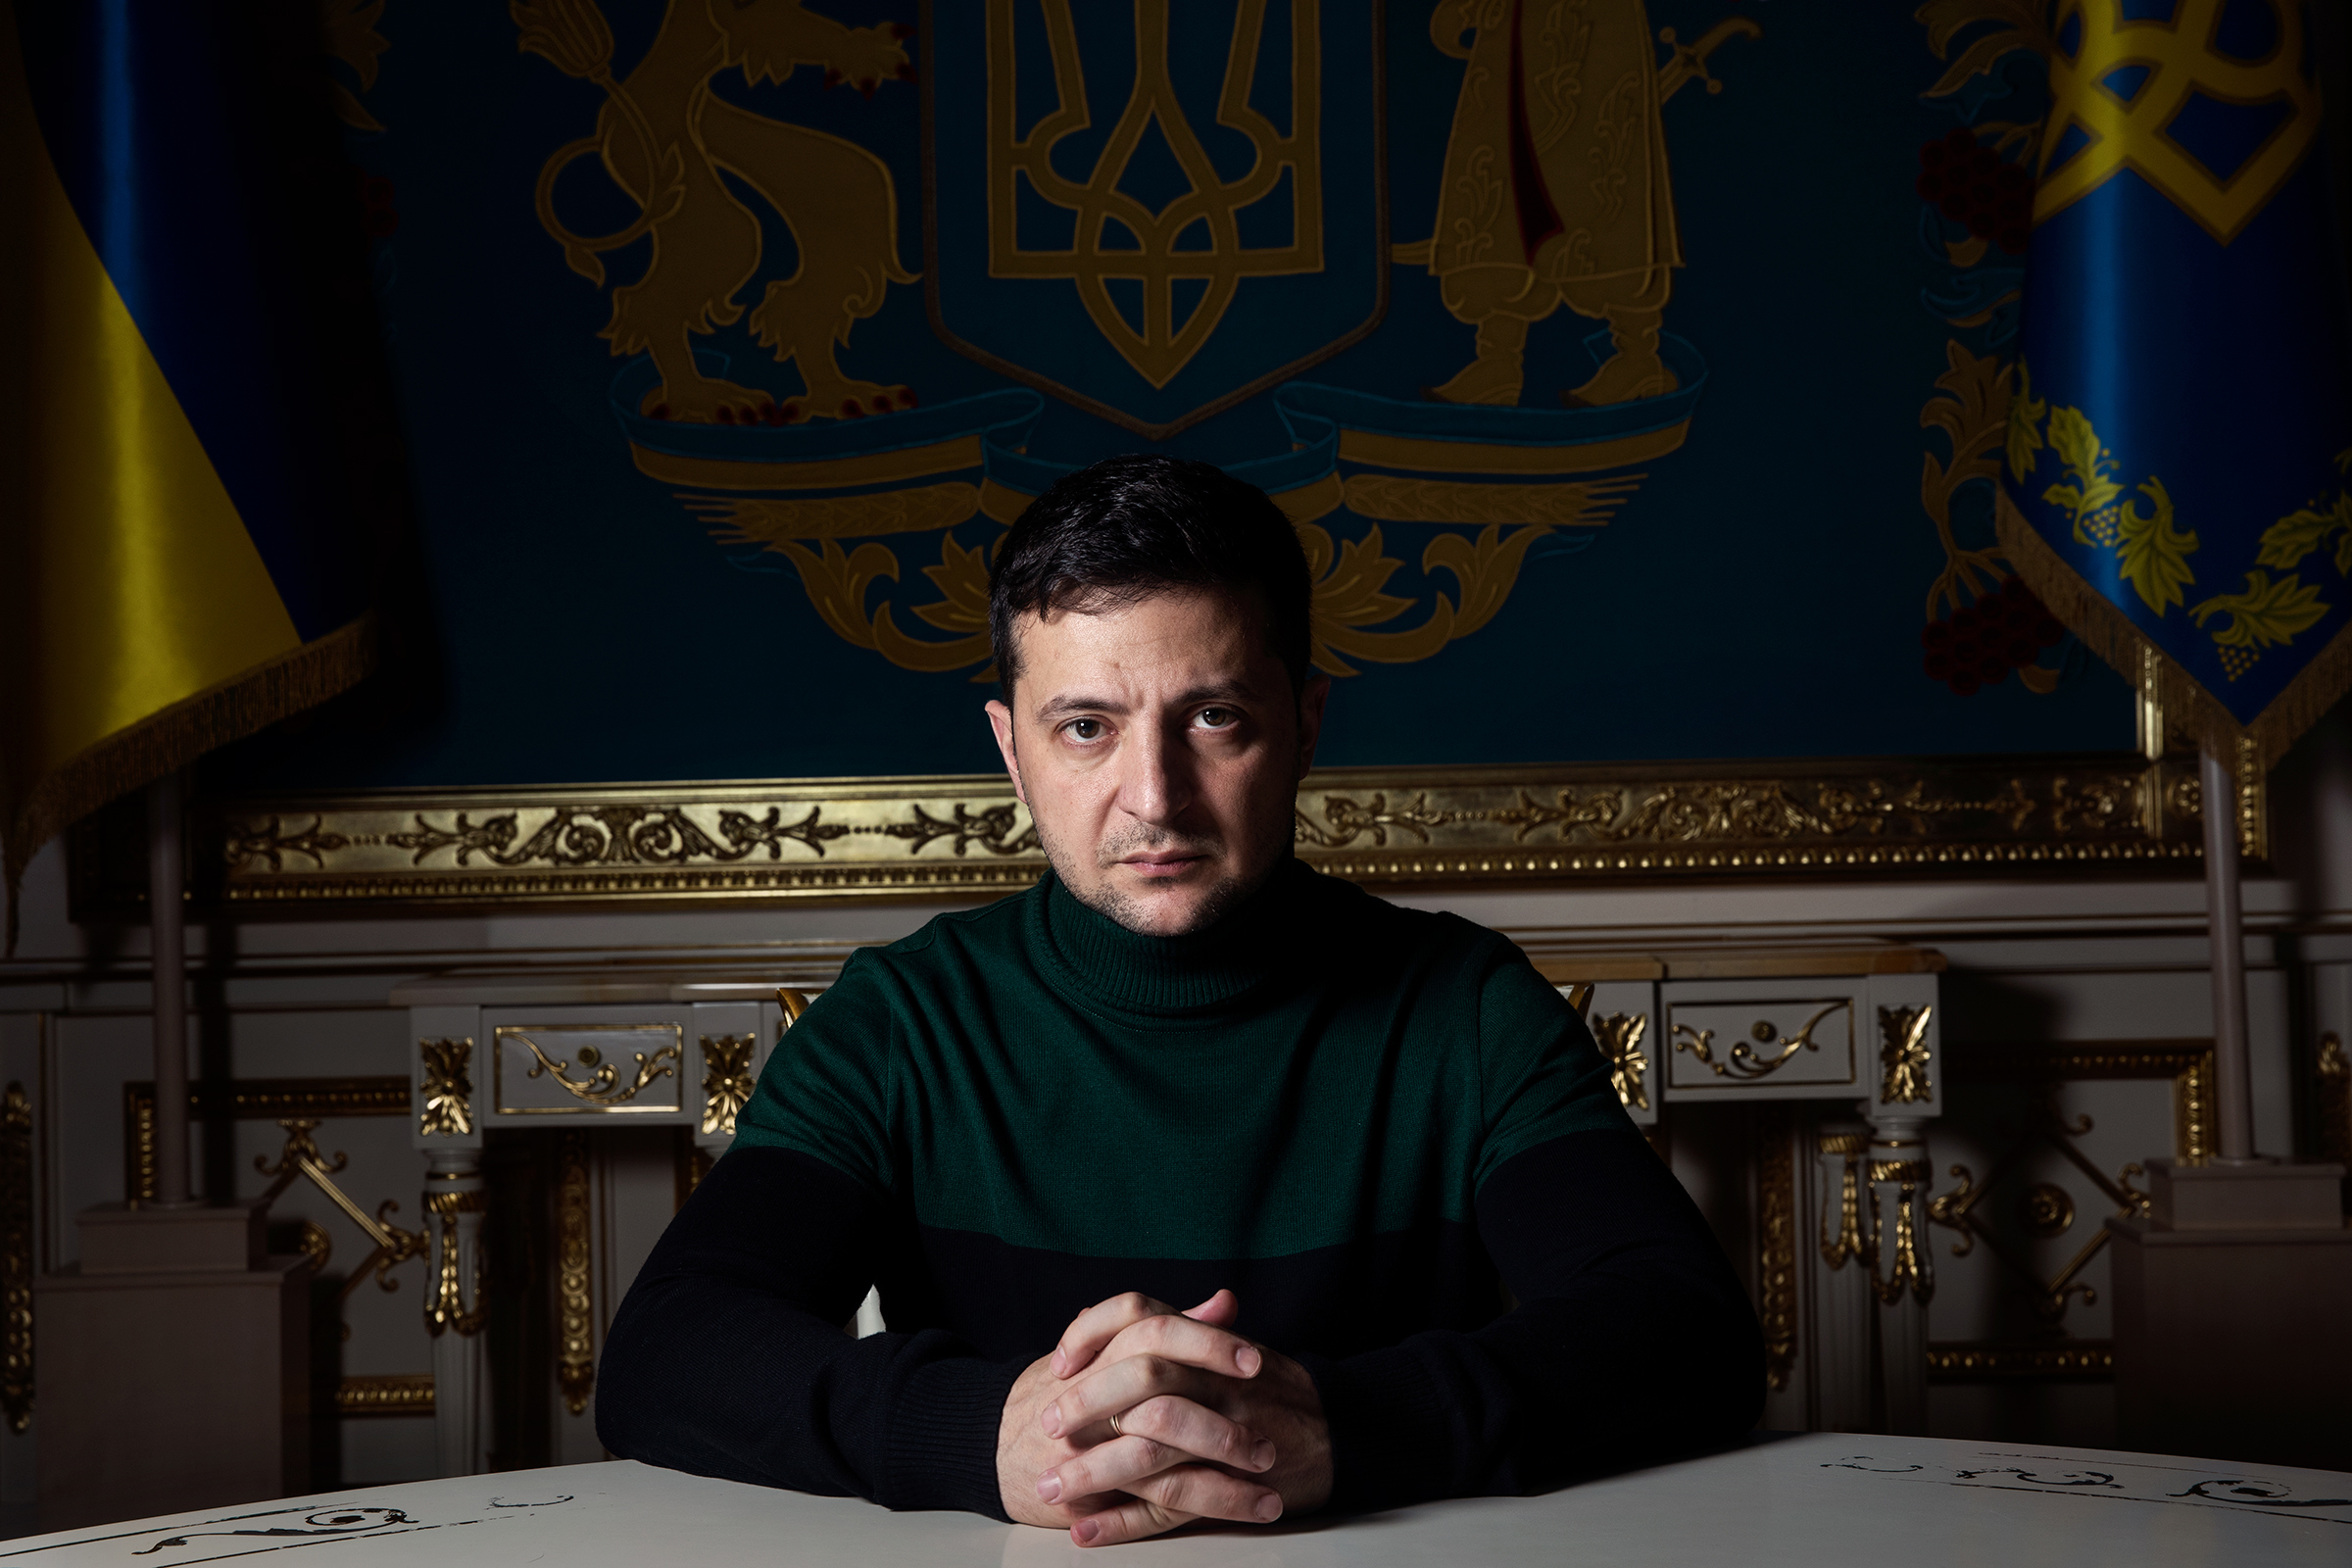 'I Don't Trust Anyone at All.' Ukrainian President Volodymyr Zelensky Speaks Out on Trump, Putin and a Divided Europe